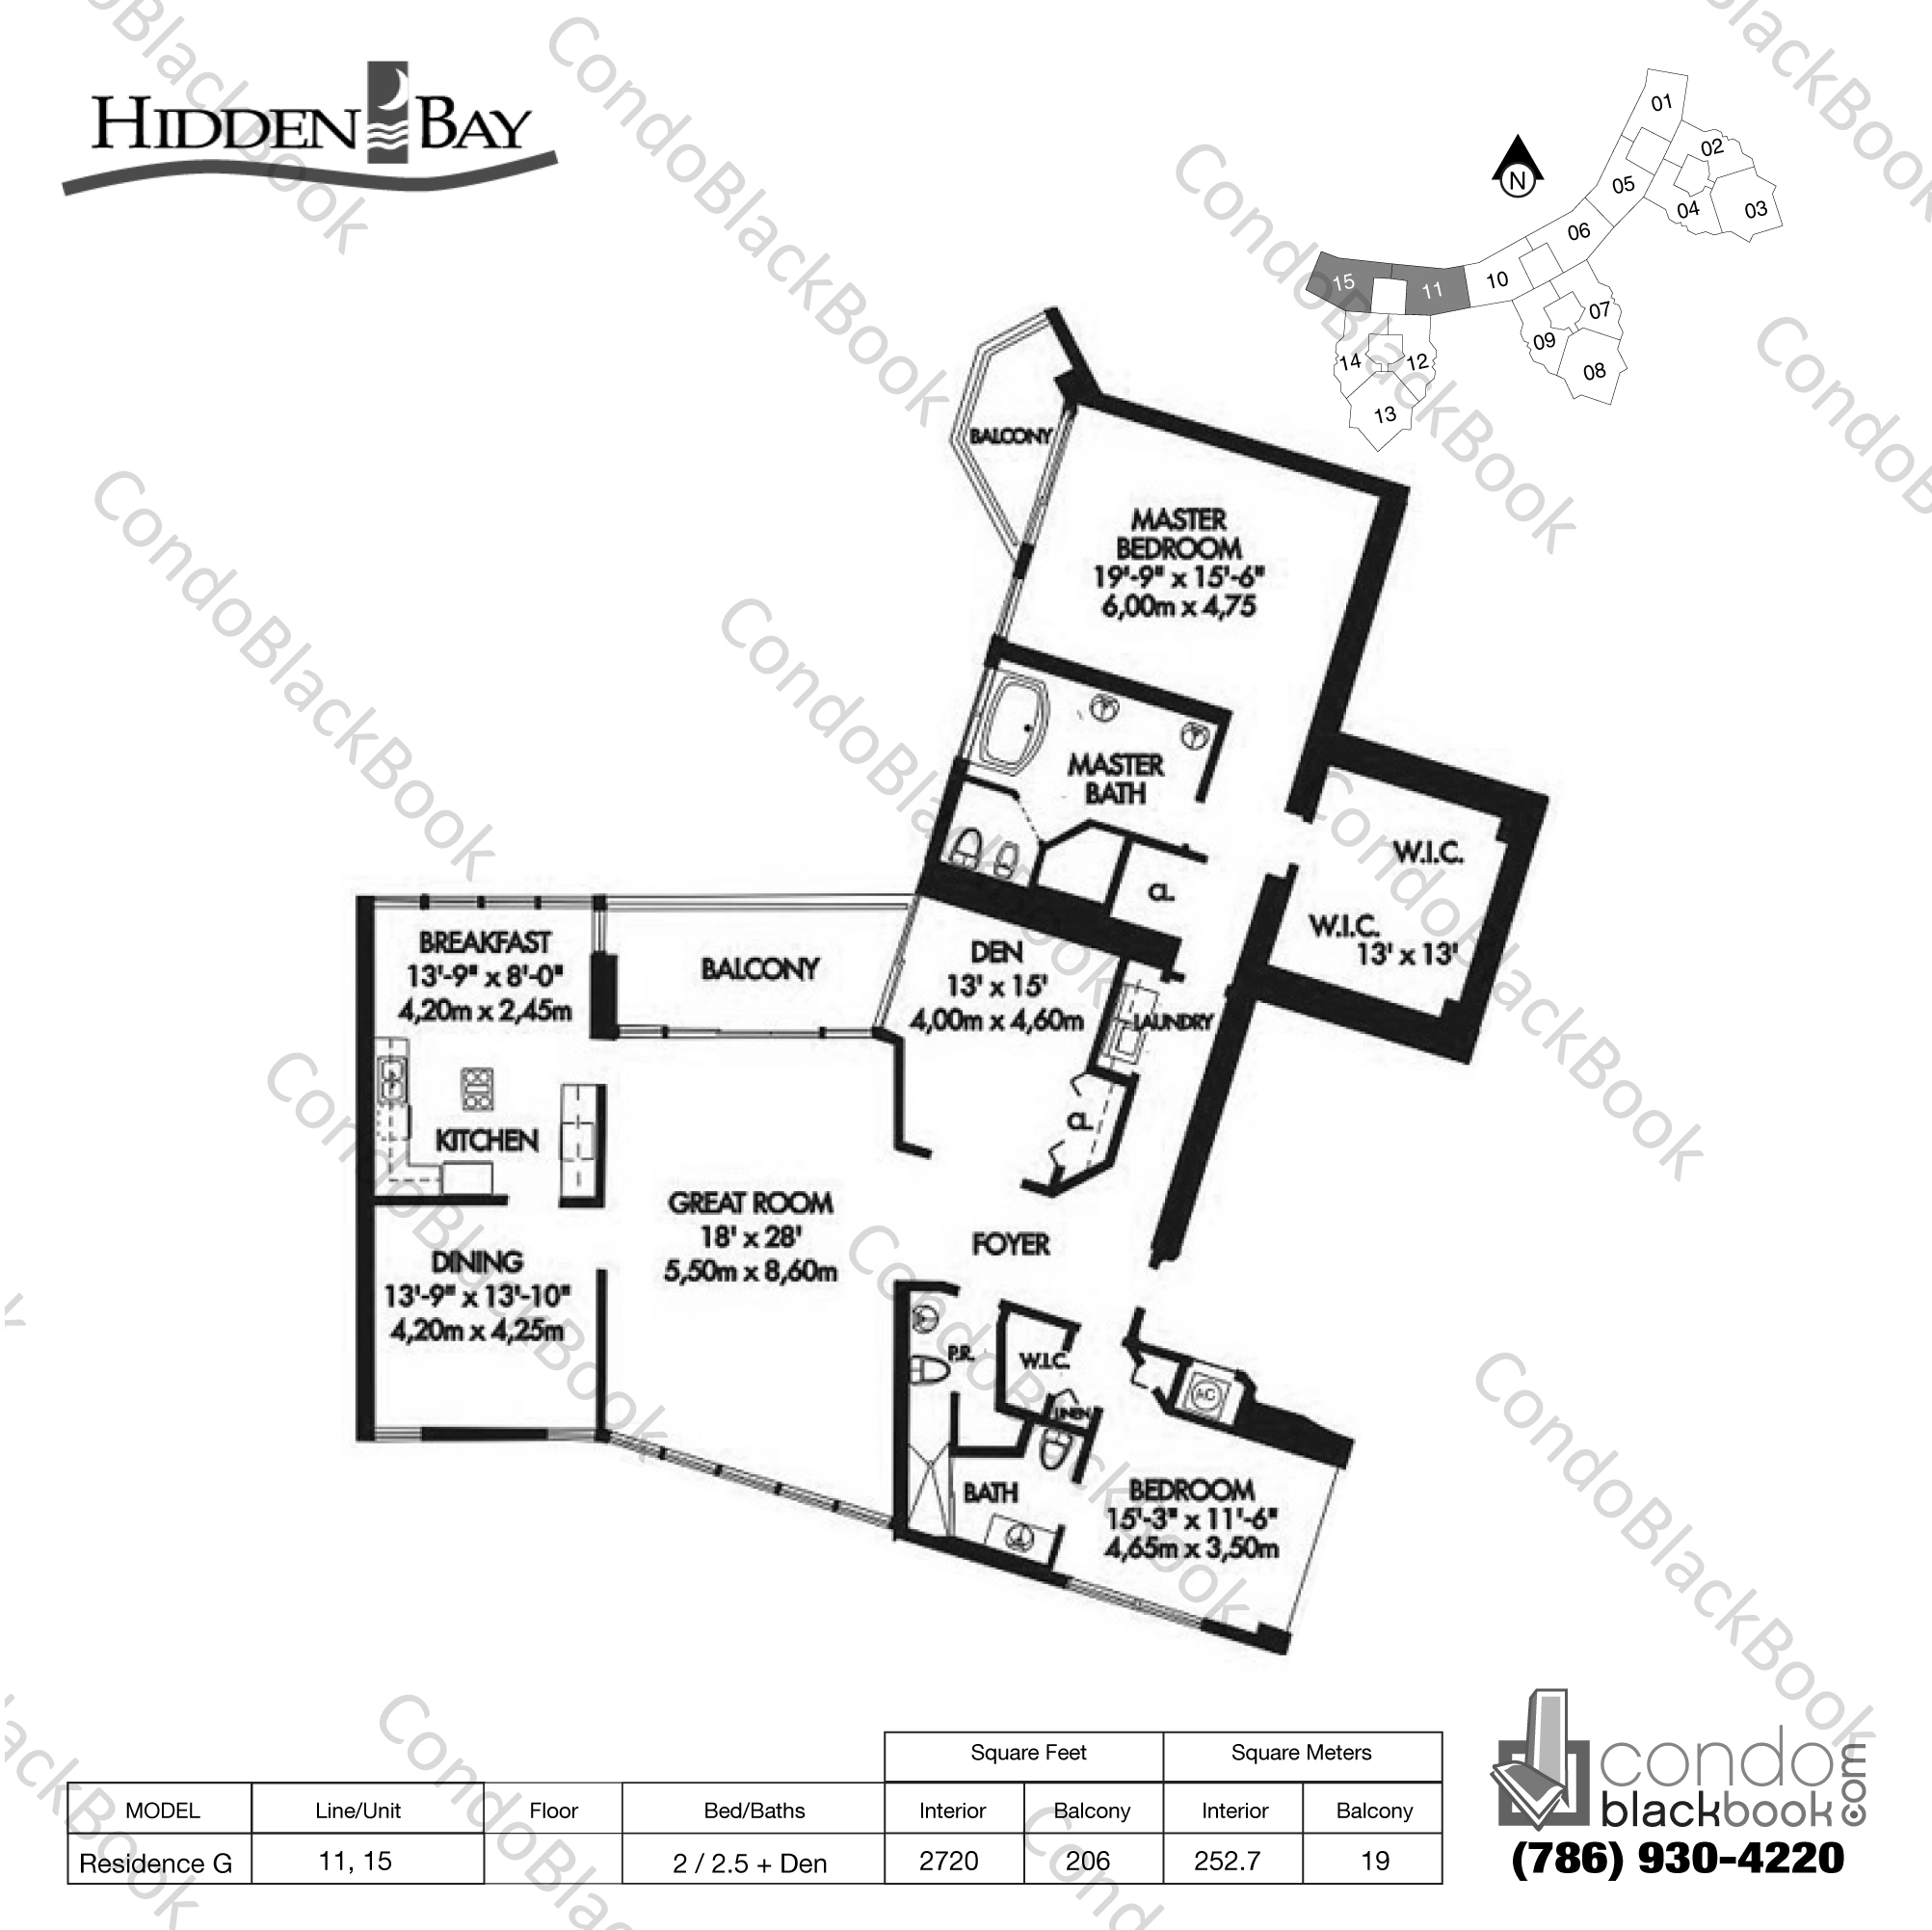 Floor plan for Hidden Bay Aventura, model Residence G, line 11, 15, 2 / 2.5 + Den bedrooms, 2720 sq ft